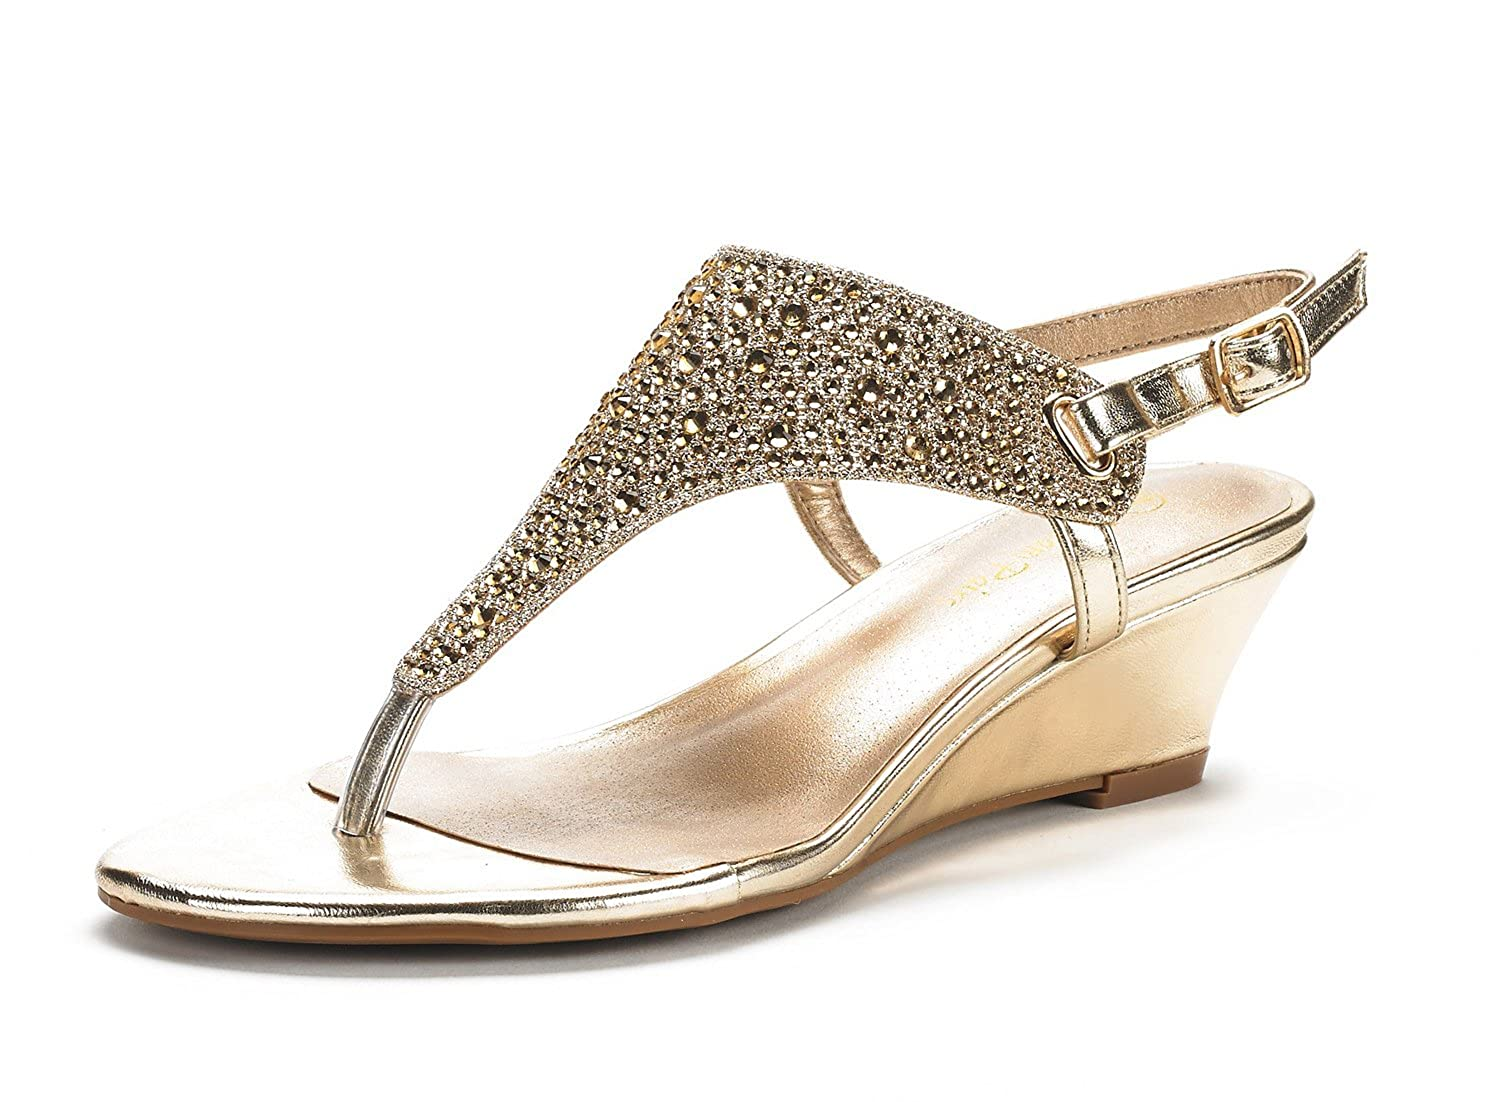 Women's Aditi Gold Sparkling Faux Rhinestone Low Wedge Dress Sandals - DeluxeAdultCostumes.com